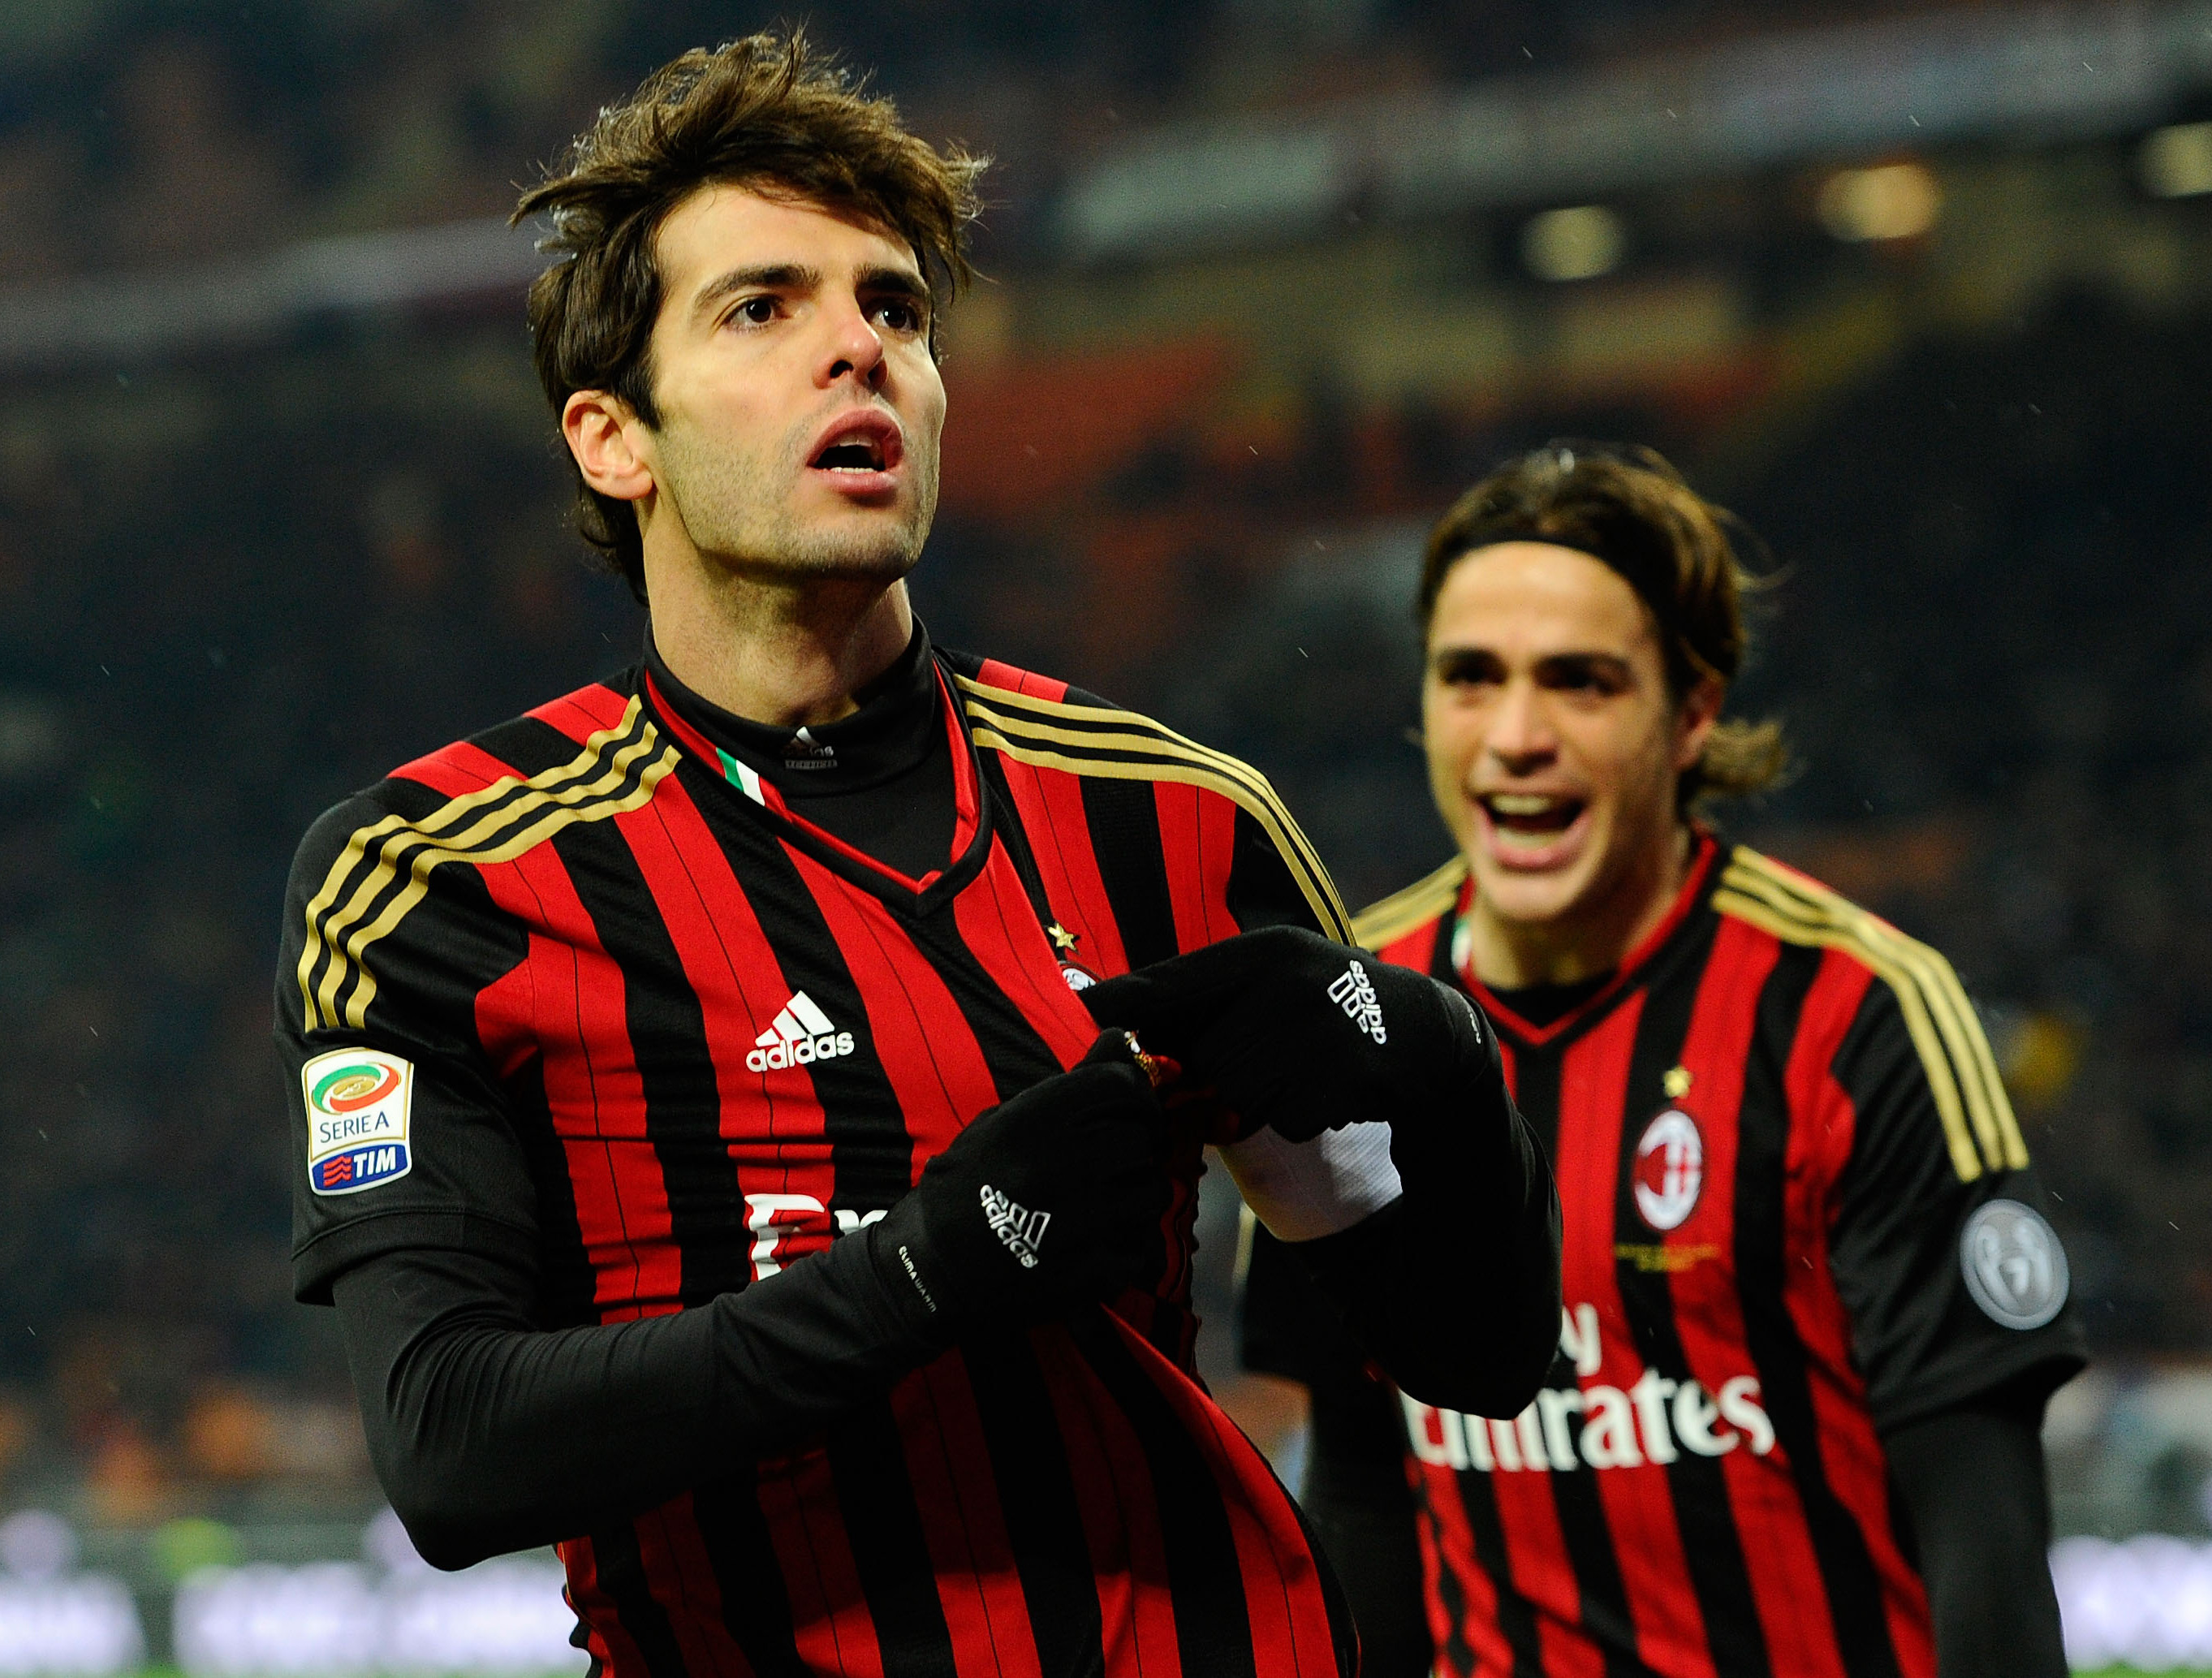 Ricardo Kaka Hd Wallpapers Kaka Hd Wallpapers